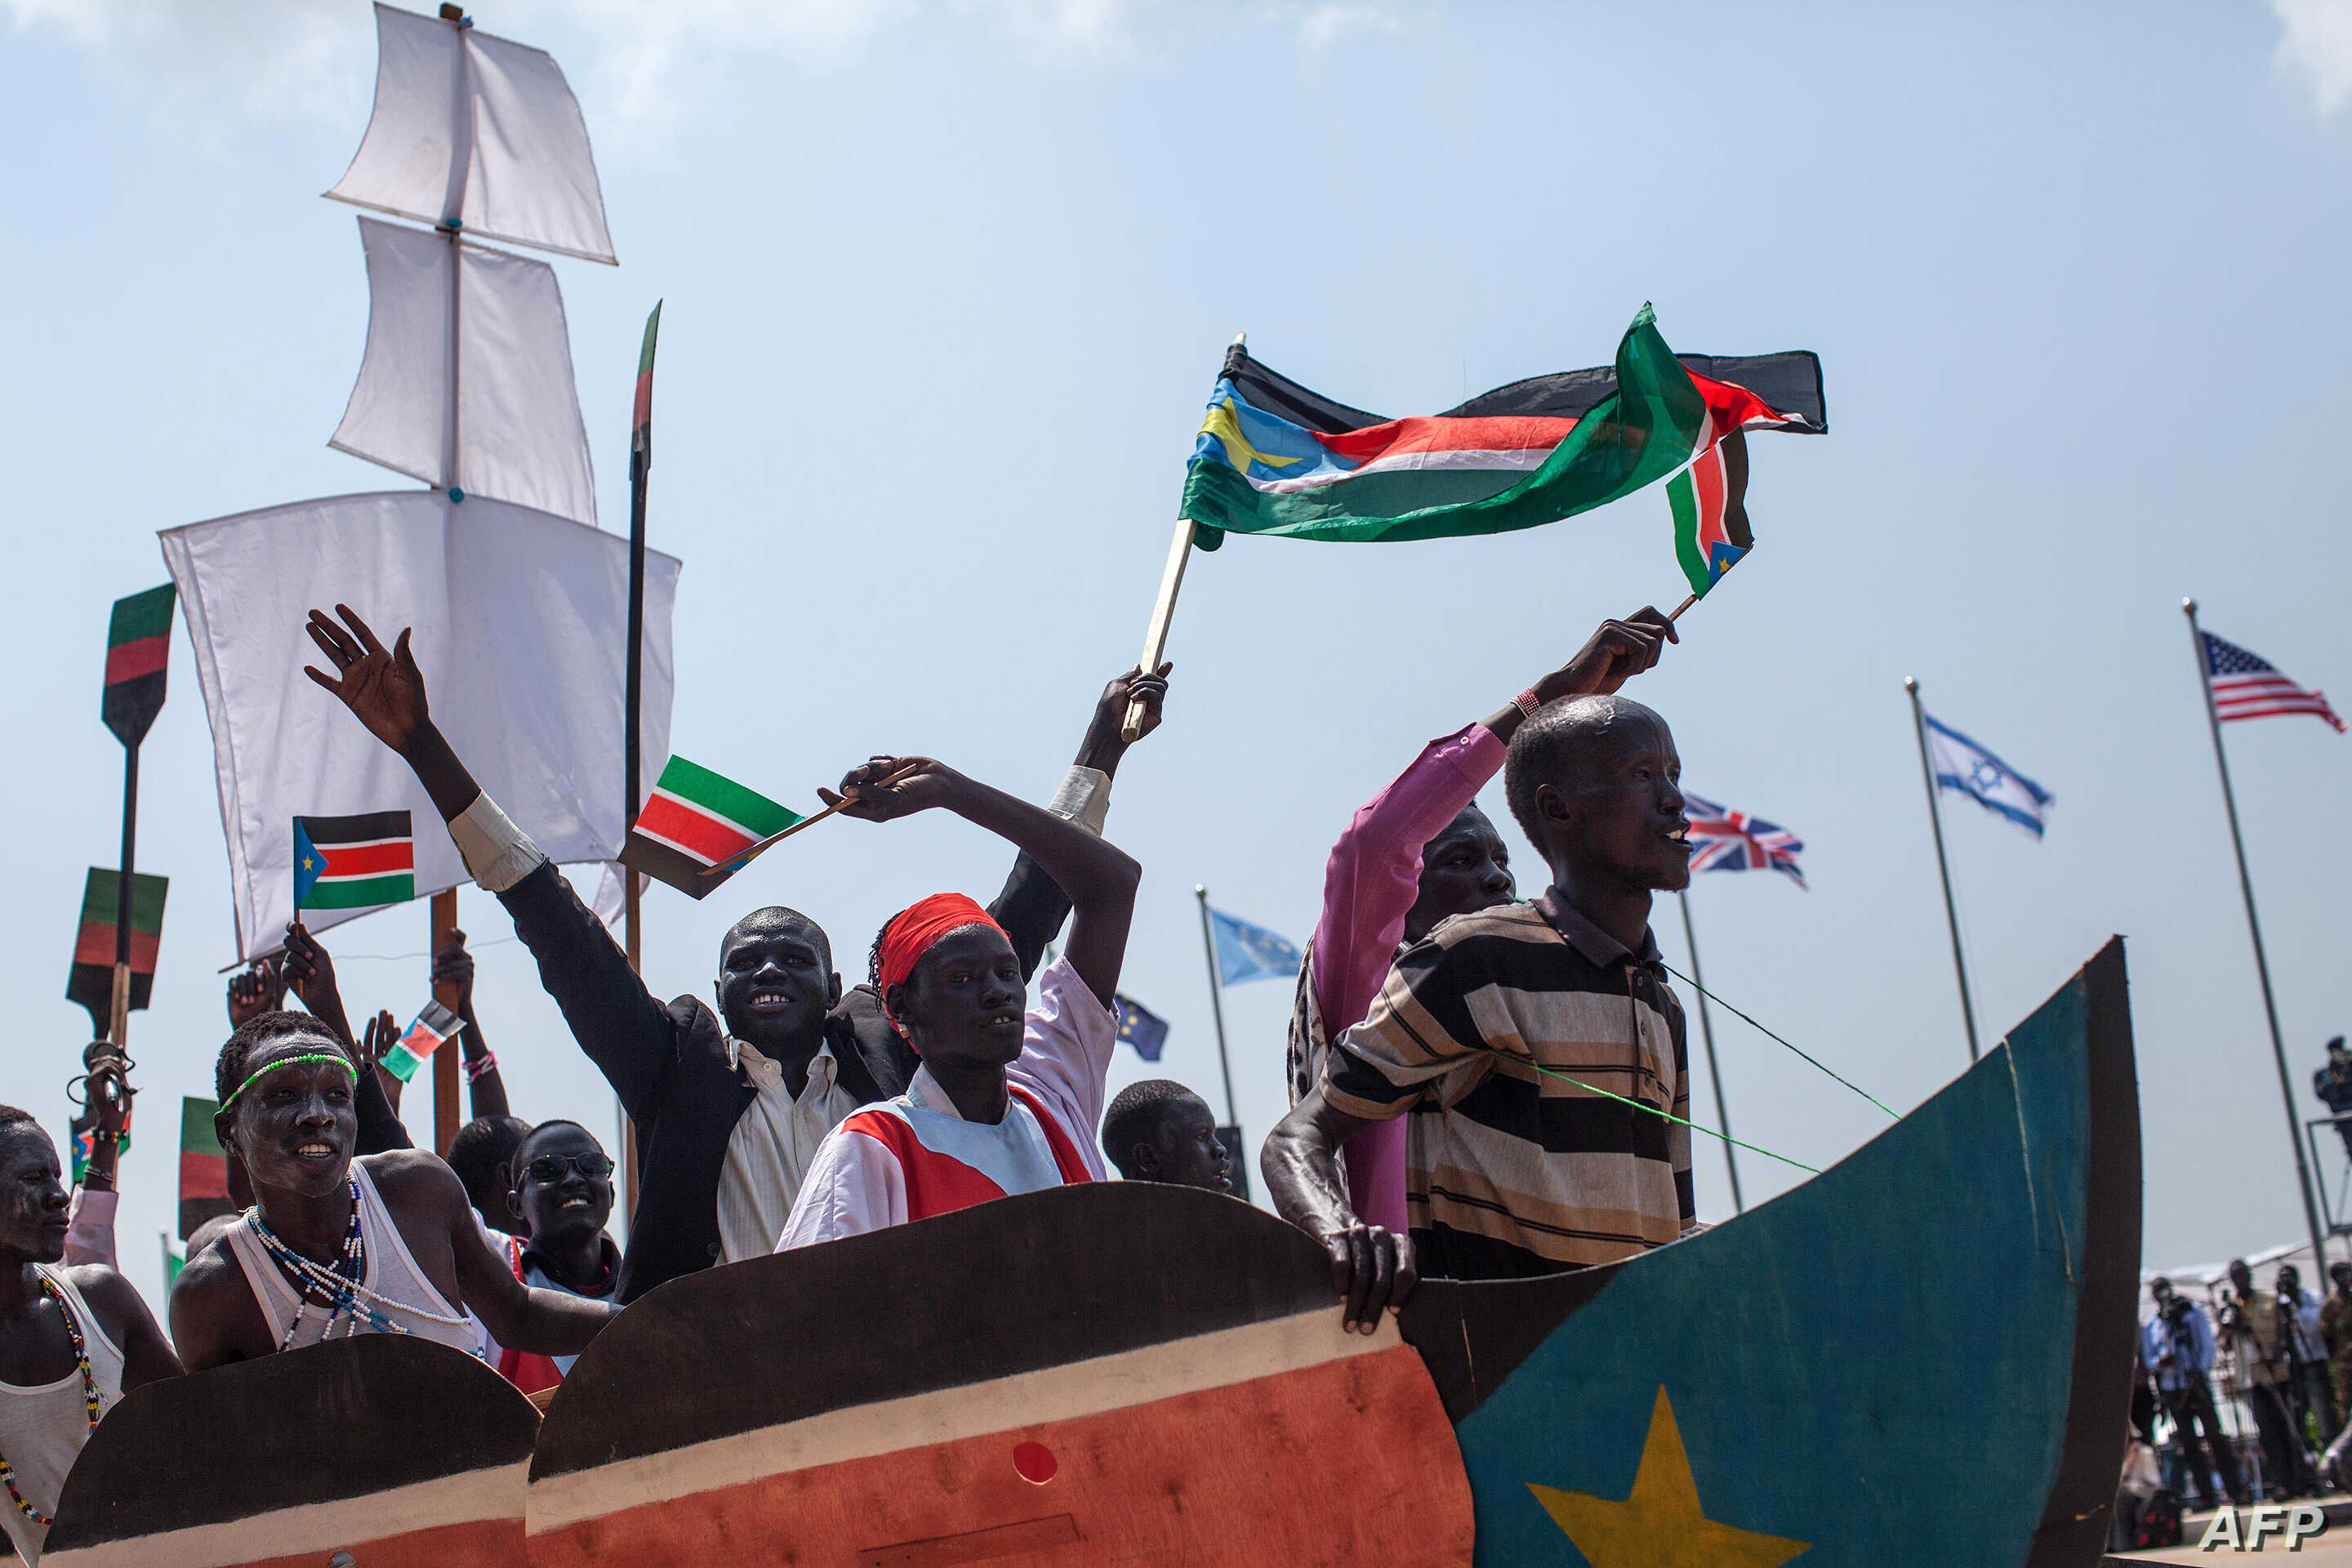 Dancers put on a short theatrical performance promoting unity in South Sudan and hope for a peaceful future in the war torn nation during celebrations marking three years of Independence in Juba, July 9, 2014.